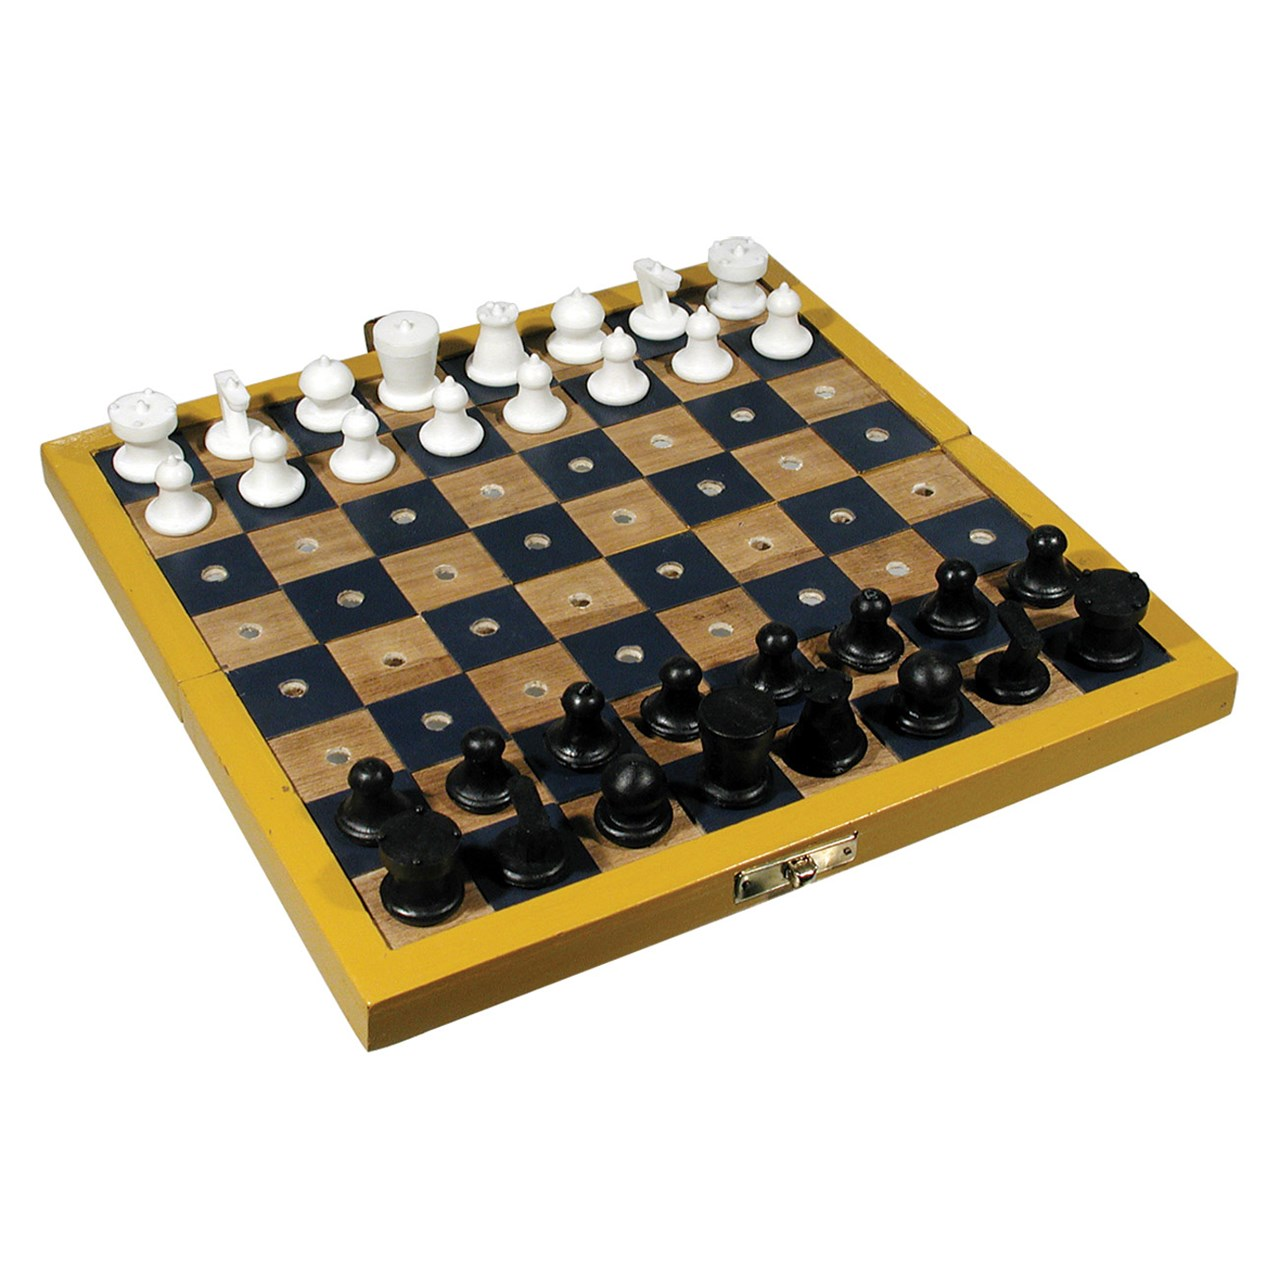 MaxiAids Travel Chess Set for the Blind or Those With Low Vision